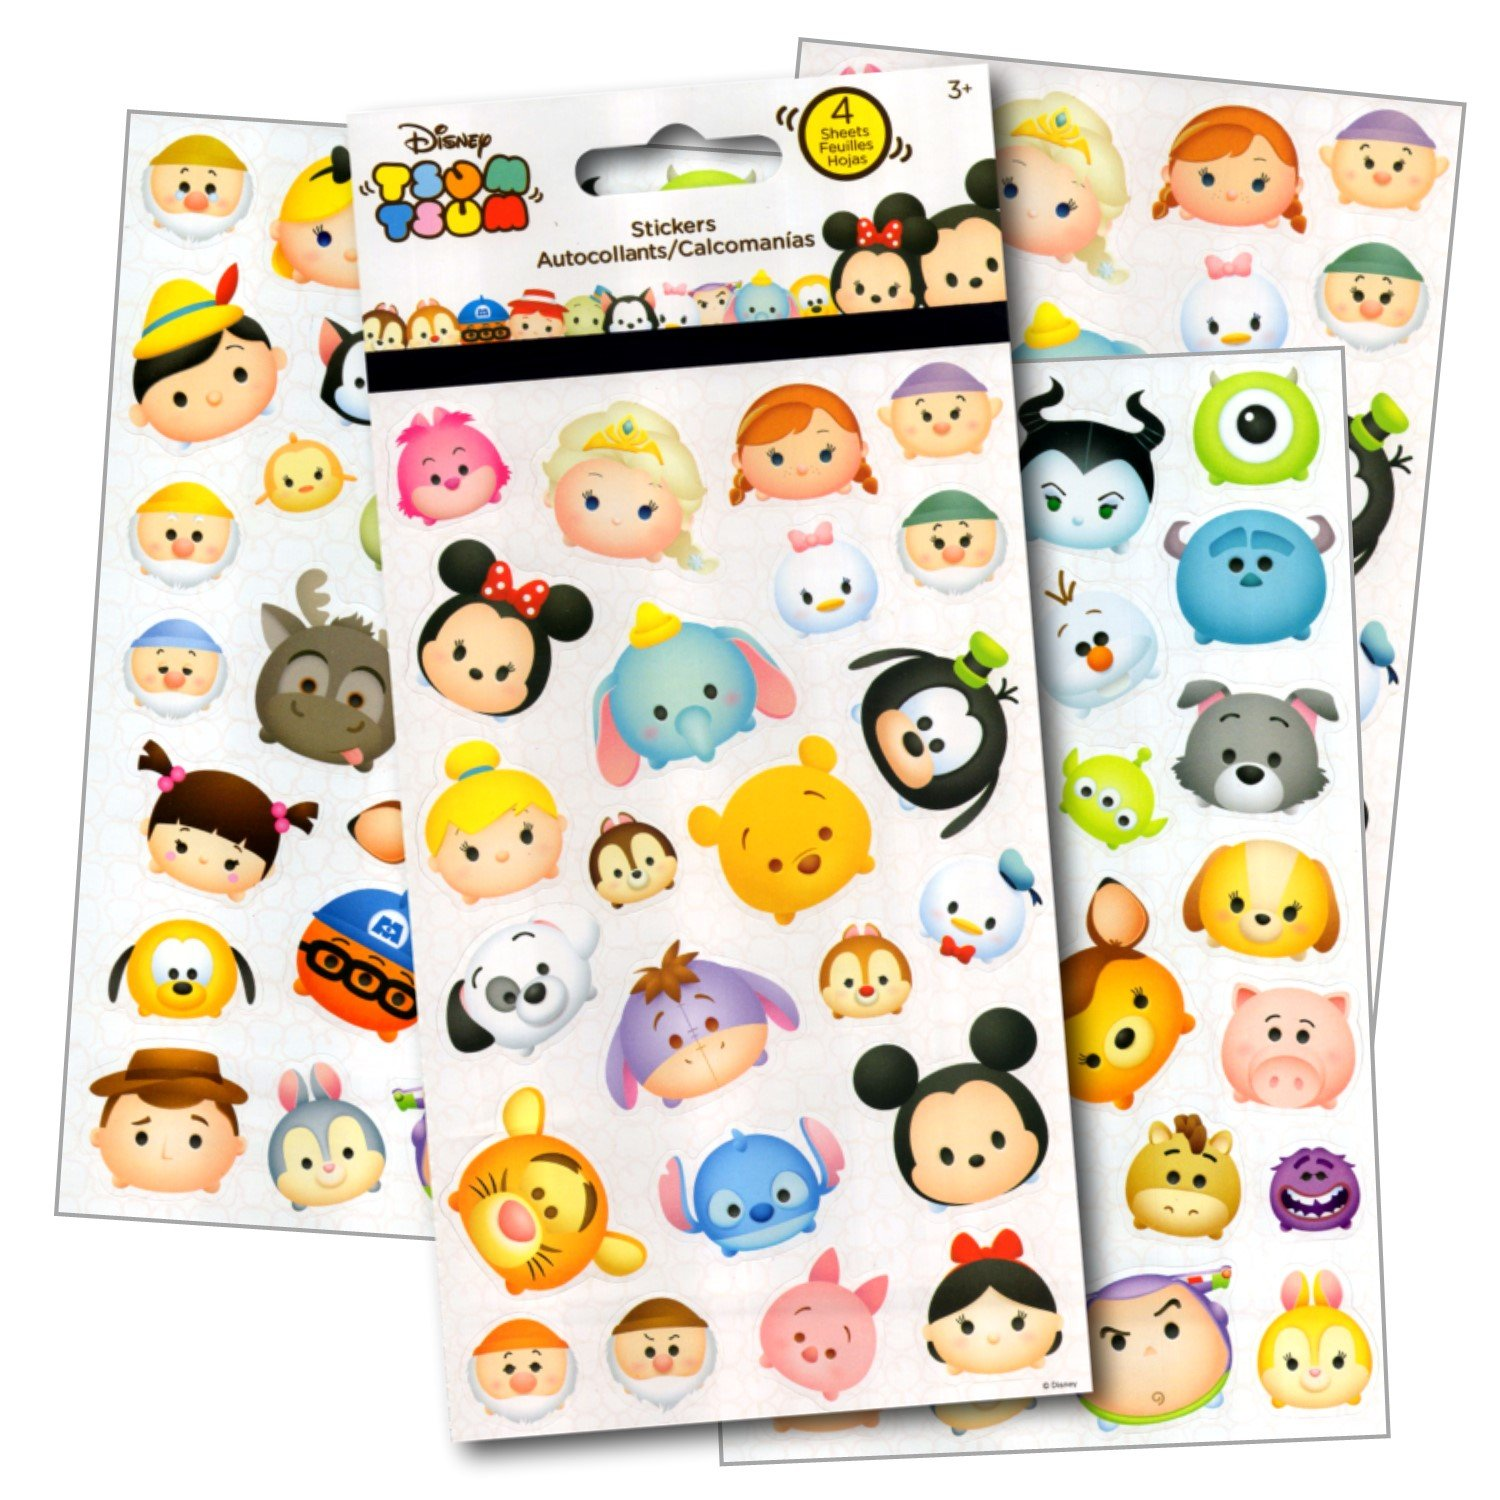 Disney Tsum Tsum Stickers 4 Sheets of Stickers Featuring Mickey Mouse Minnie Mouse also Featuring Tsum Tsum Characters from Frozen Toy Story Monsters Inc and Many More by Disney Studios